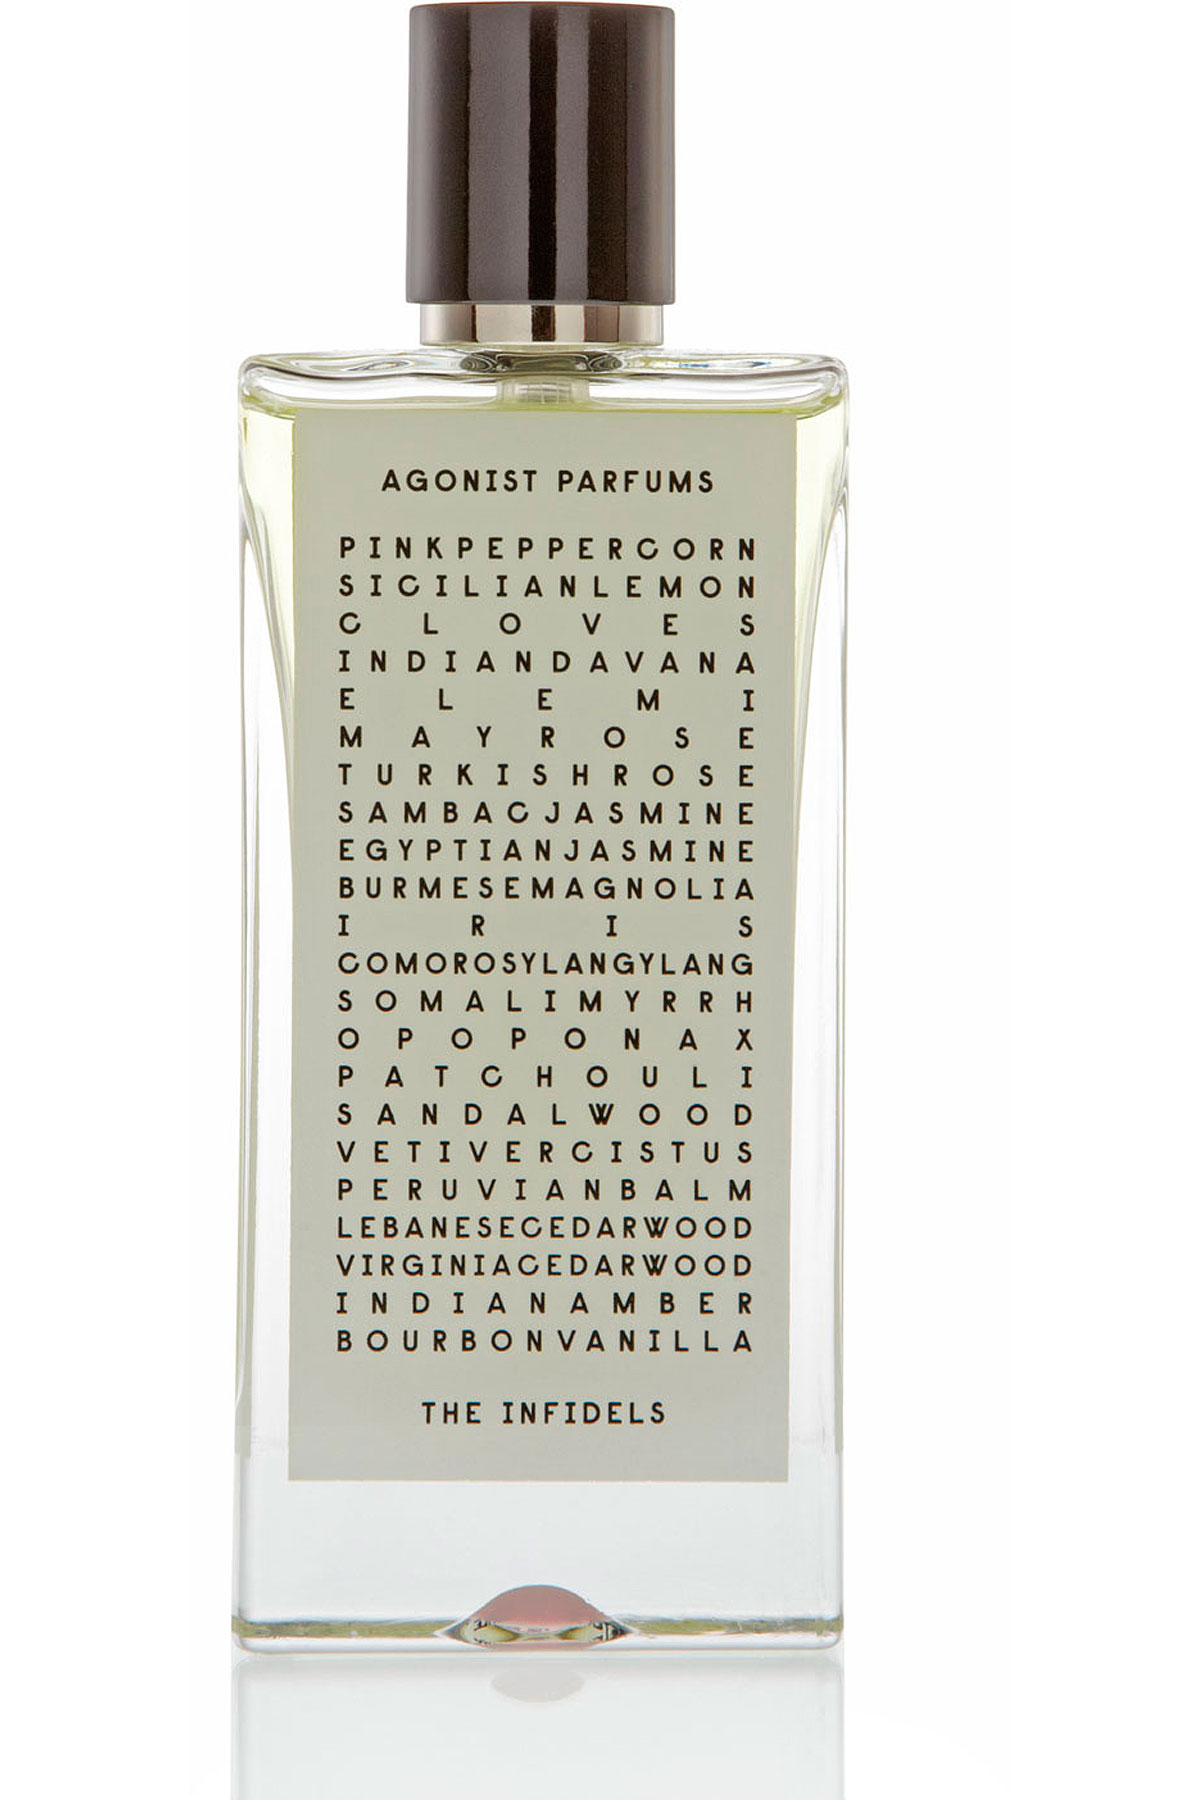 Agonist Fragrances for Women, The Infidels - Eau De Parfum - 50 Ml, 2019, 50 ml